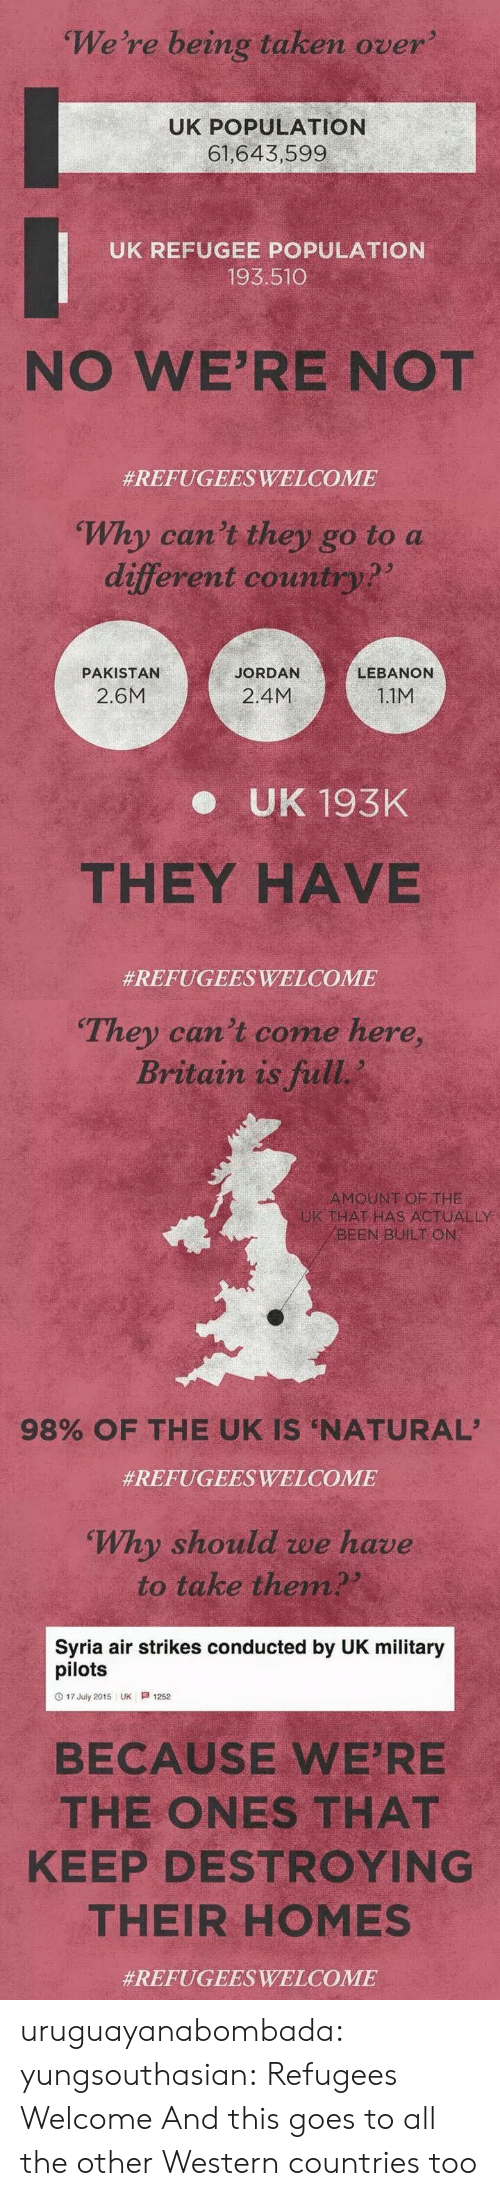 Taken, Tumblr, and Blog: We're being taken over  UK POPULATION  61,643,599  UK REFUGEE POPULATION  193.510  NO WE'RE NOT  #REFUGEESWELCOME   Why can't they go to a  different country?  PAKISTAN  JORDAN  LEBANON  2.6M  2.4M  1.1M  e UK 193K  THEY HAVE  #REFUGEESWELCOME   They can't come here,  Britain is full  AMOUNT OF THE  THAT HAS ACTUALLY  BEENBUİLT ON  98% OF THE UK IS 'NATURAL,  #REFUGEESWELCOME   Why should we have  to take them  Syria air strikes conducted by UK military  pilots  O 17 July 2015 UK 1252  BECAUSE WE'RE  THE ONES THAT  KEEP DESTROYING  THEIR HOMES  uruguayanabombada: yungsouthasian: Refugees Welcome  And this goes to all the other Western countries too